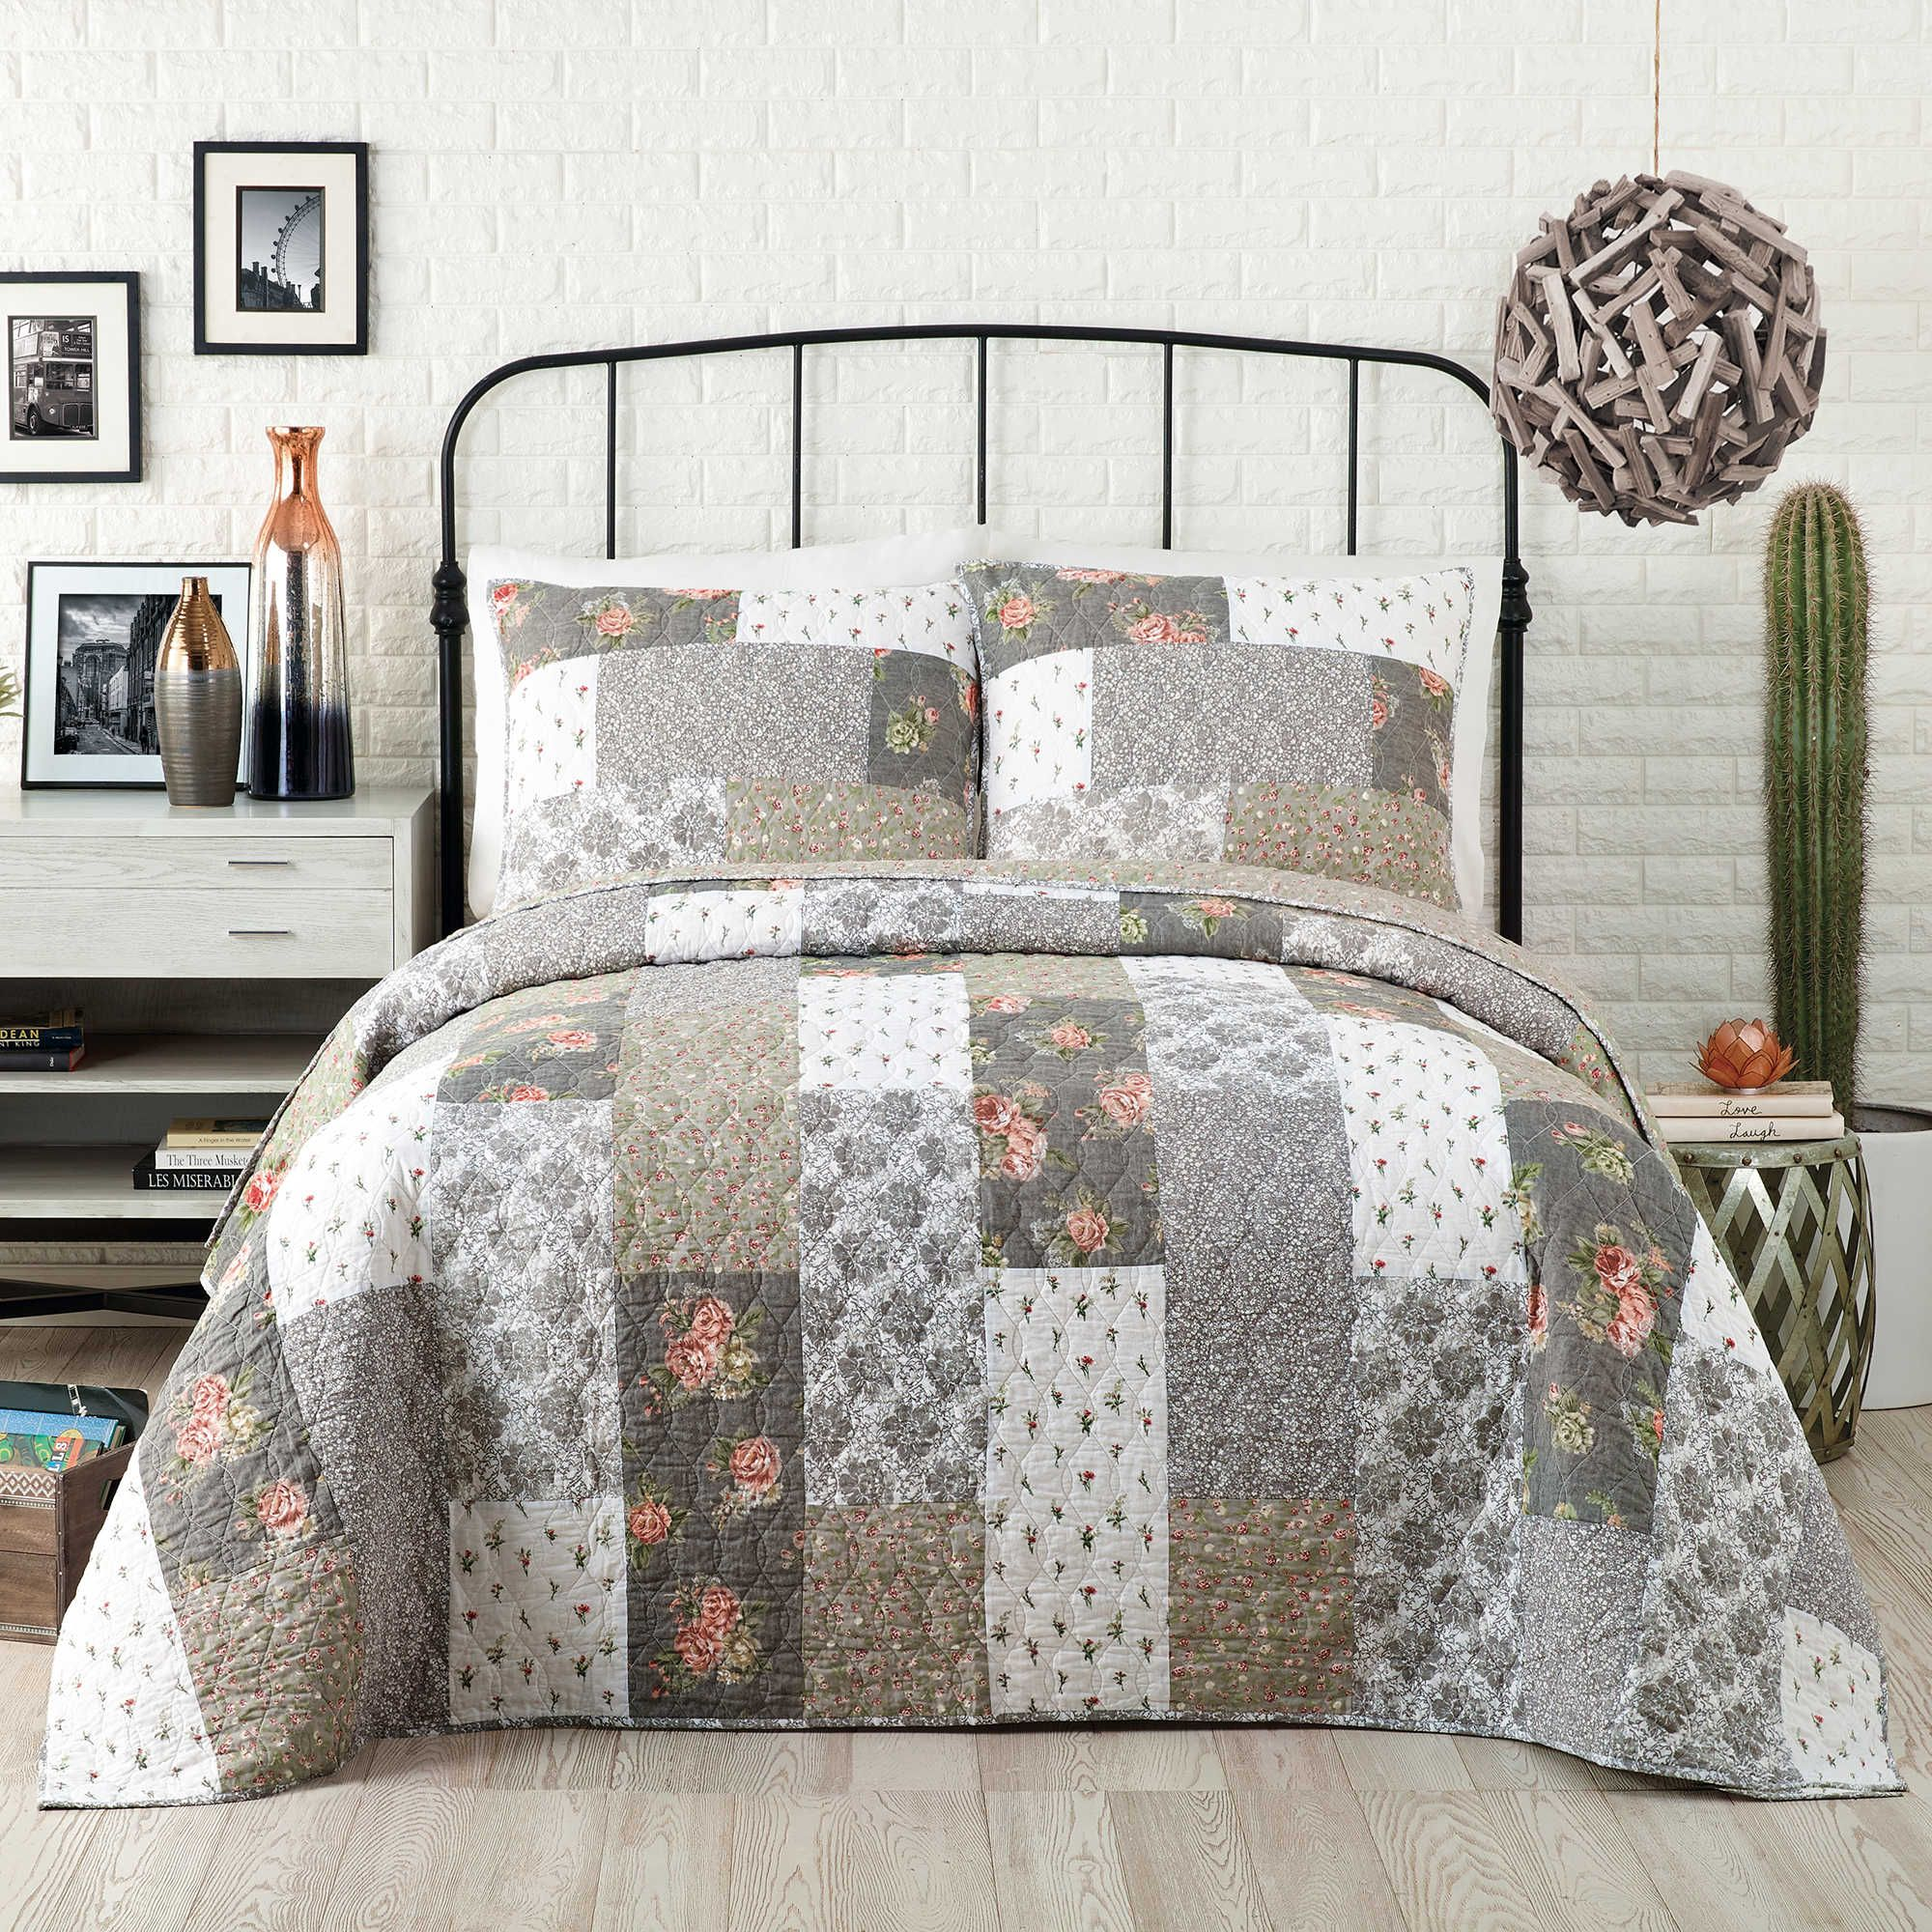 Camo Patchwork Quilt Bedding Collection